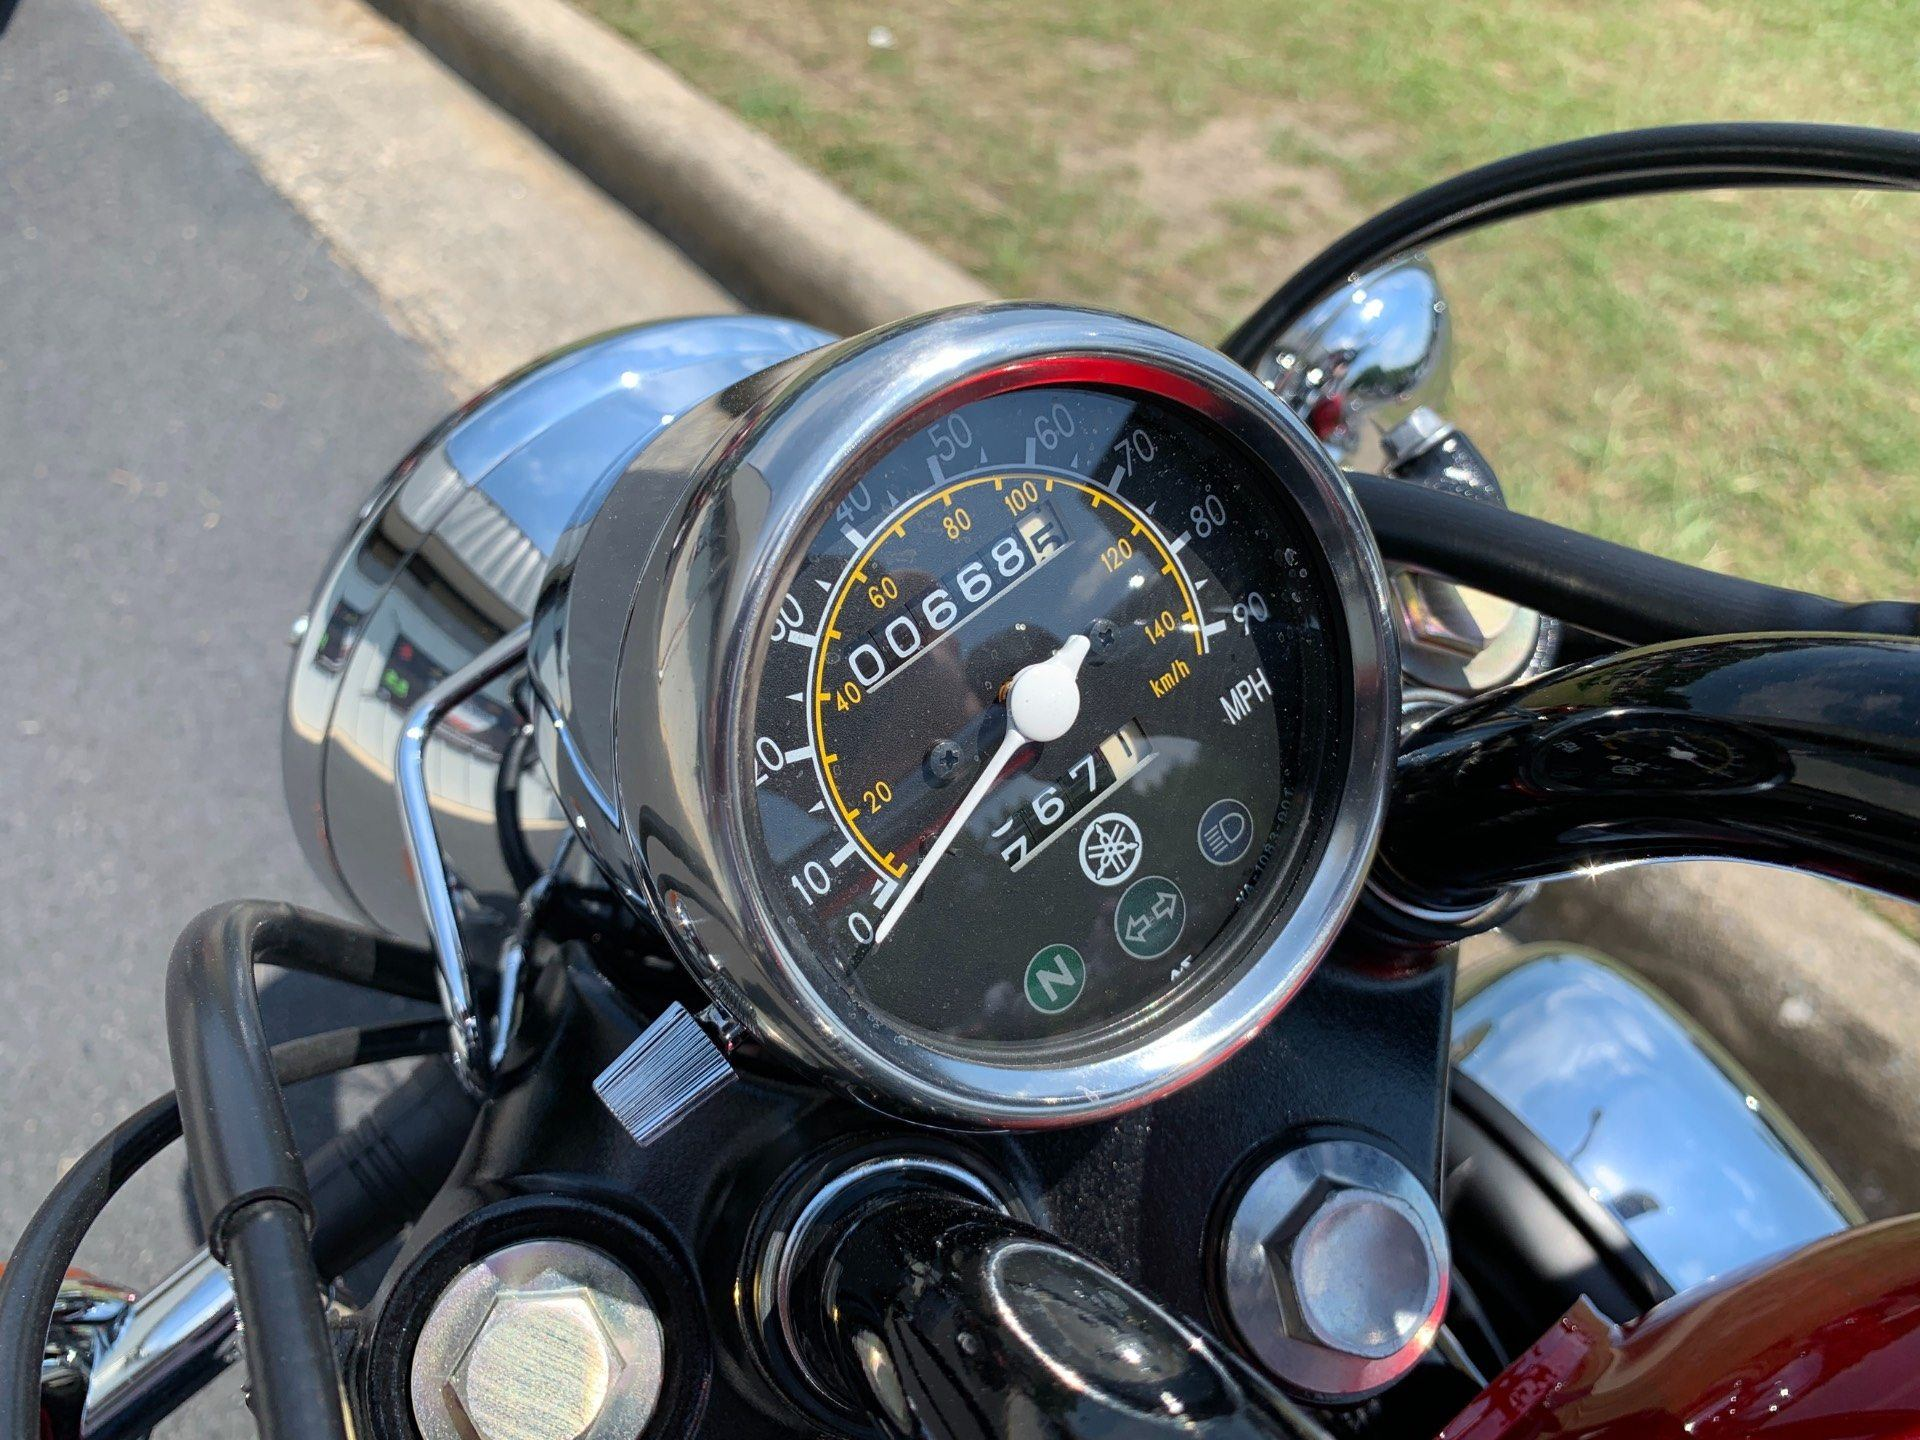 2014 Yamaha V Star 250 in Greenville, North Carolina - Photo 14